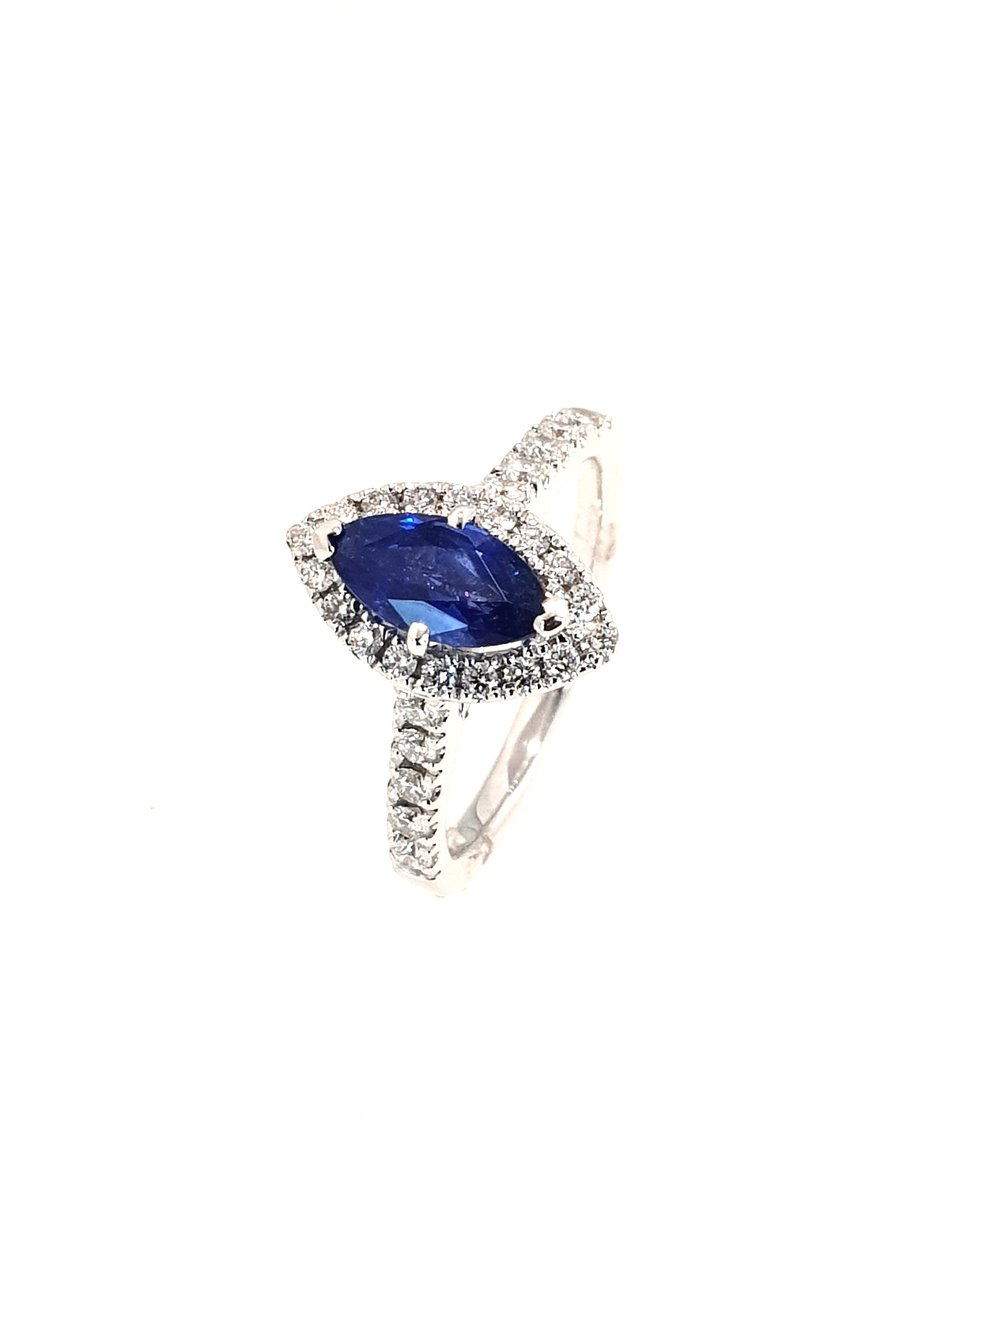 18ct White Gold Sapphire(1.08ct) & Diamond Ring  Diamond: .39ct, G, Si1  Stock Code: N8977  £2400